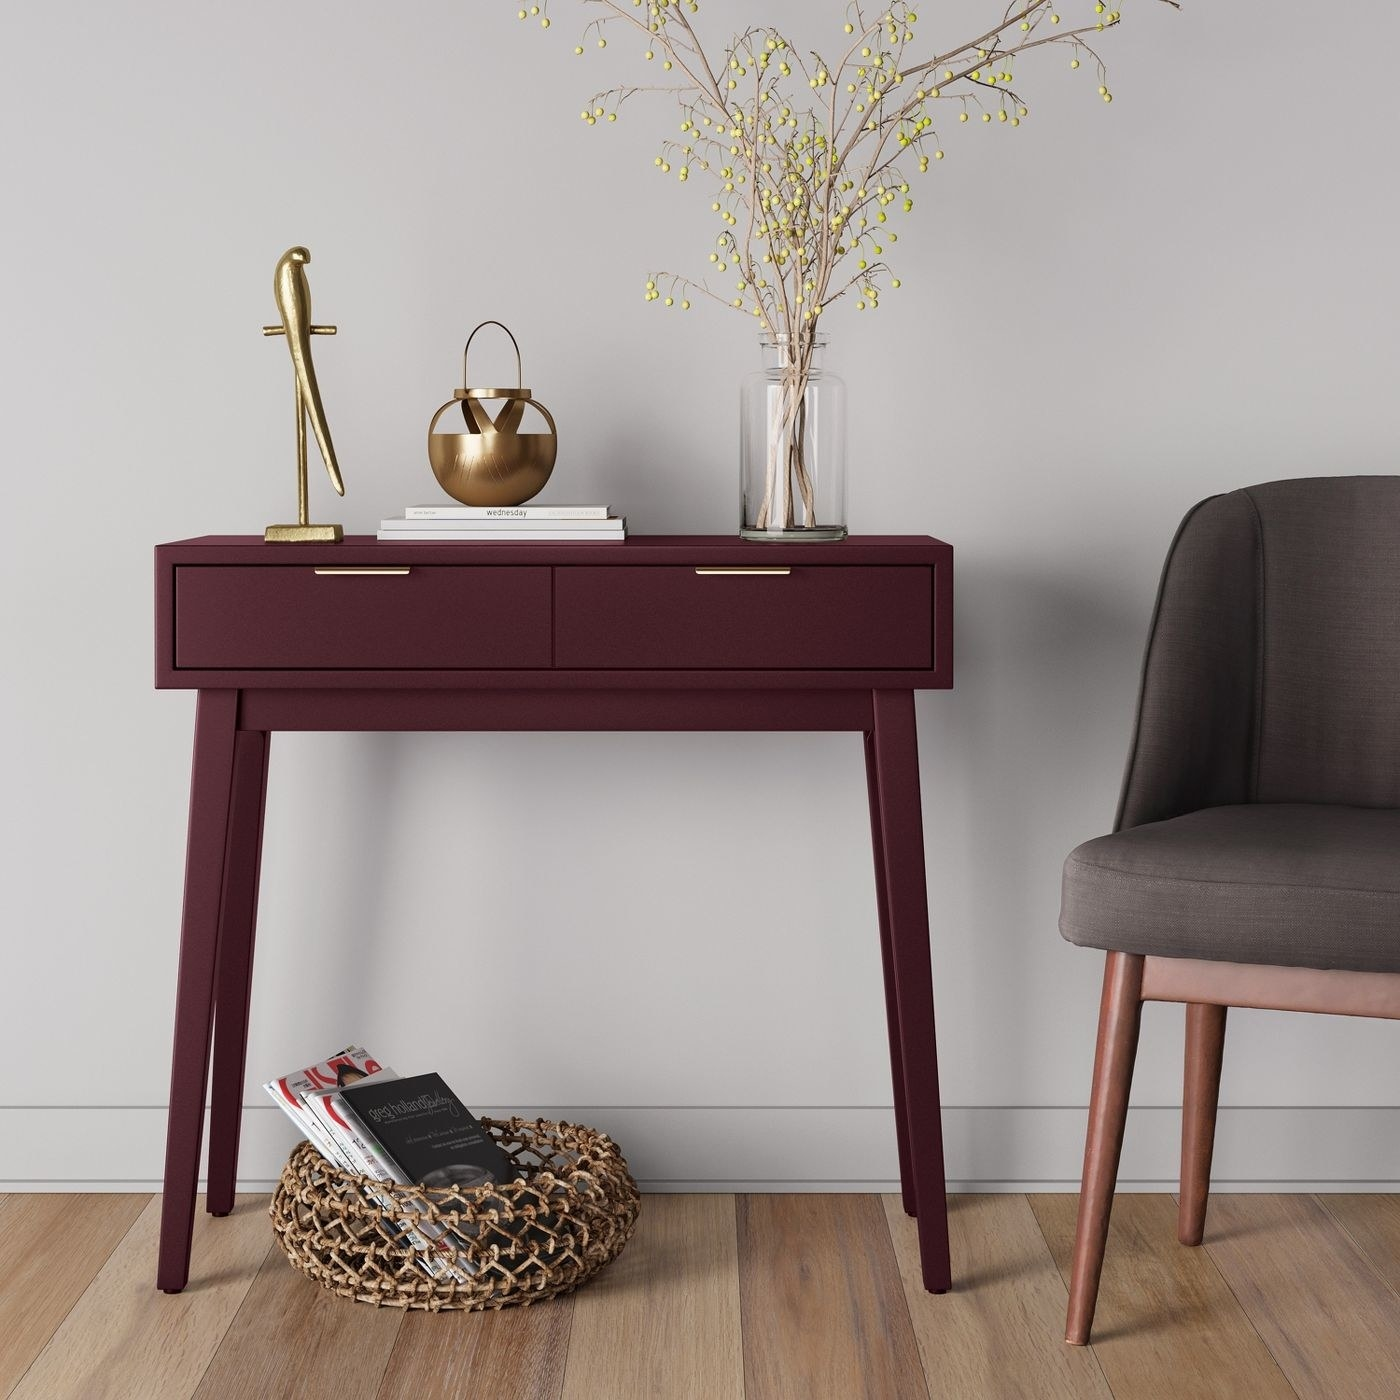 The console table in an entryway